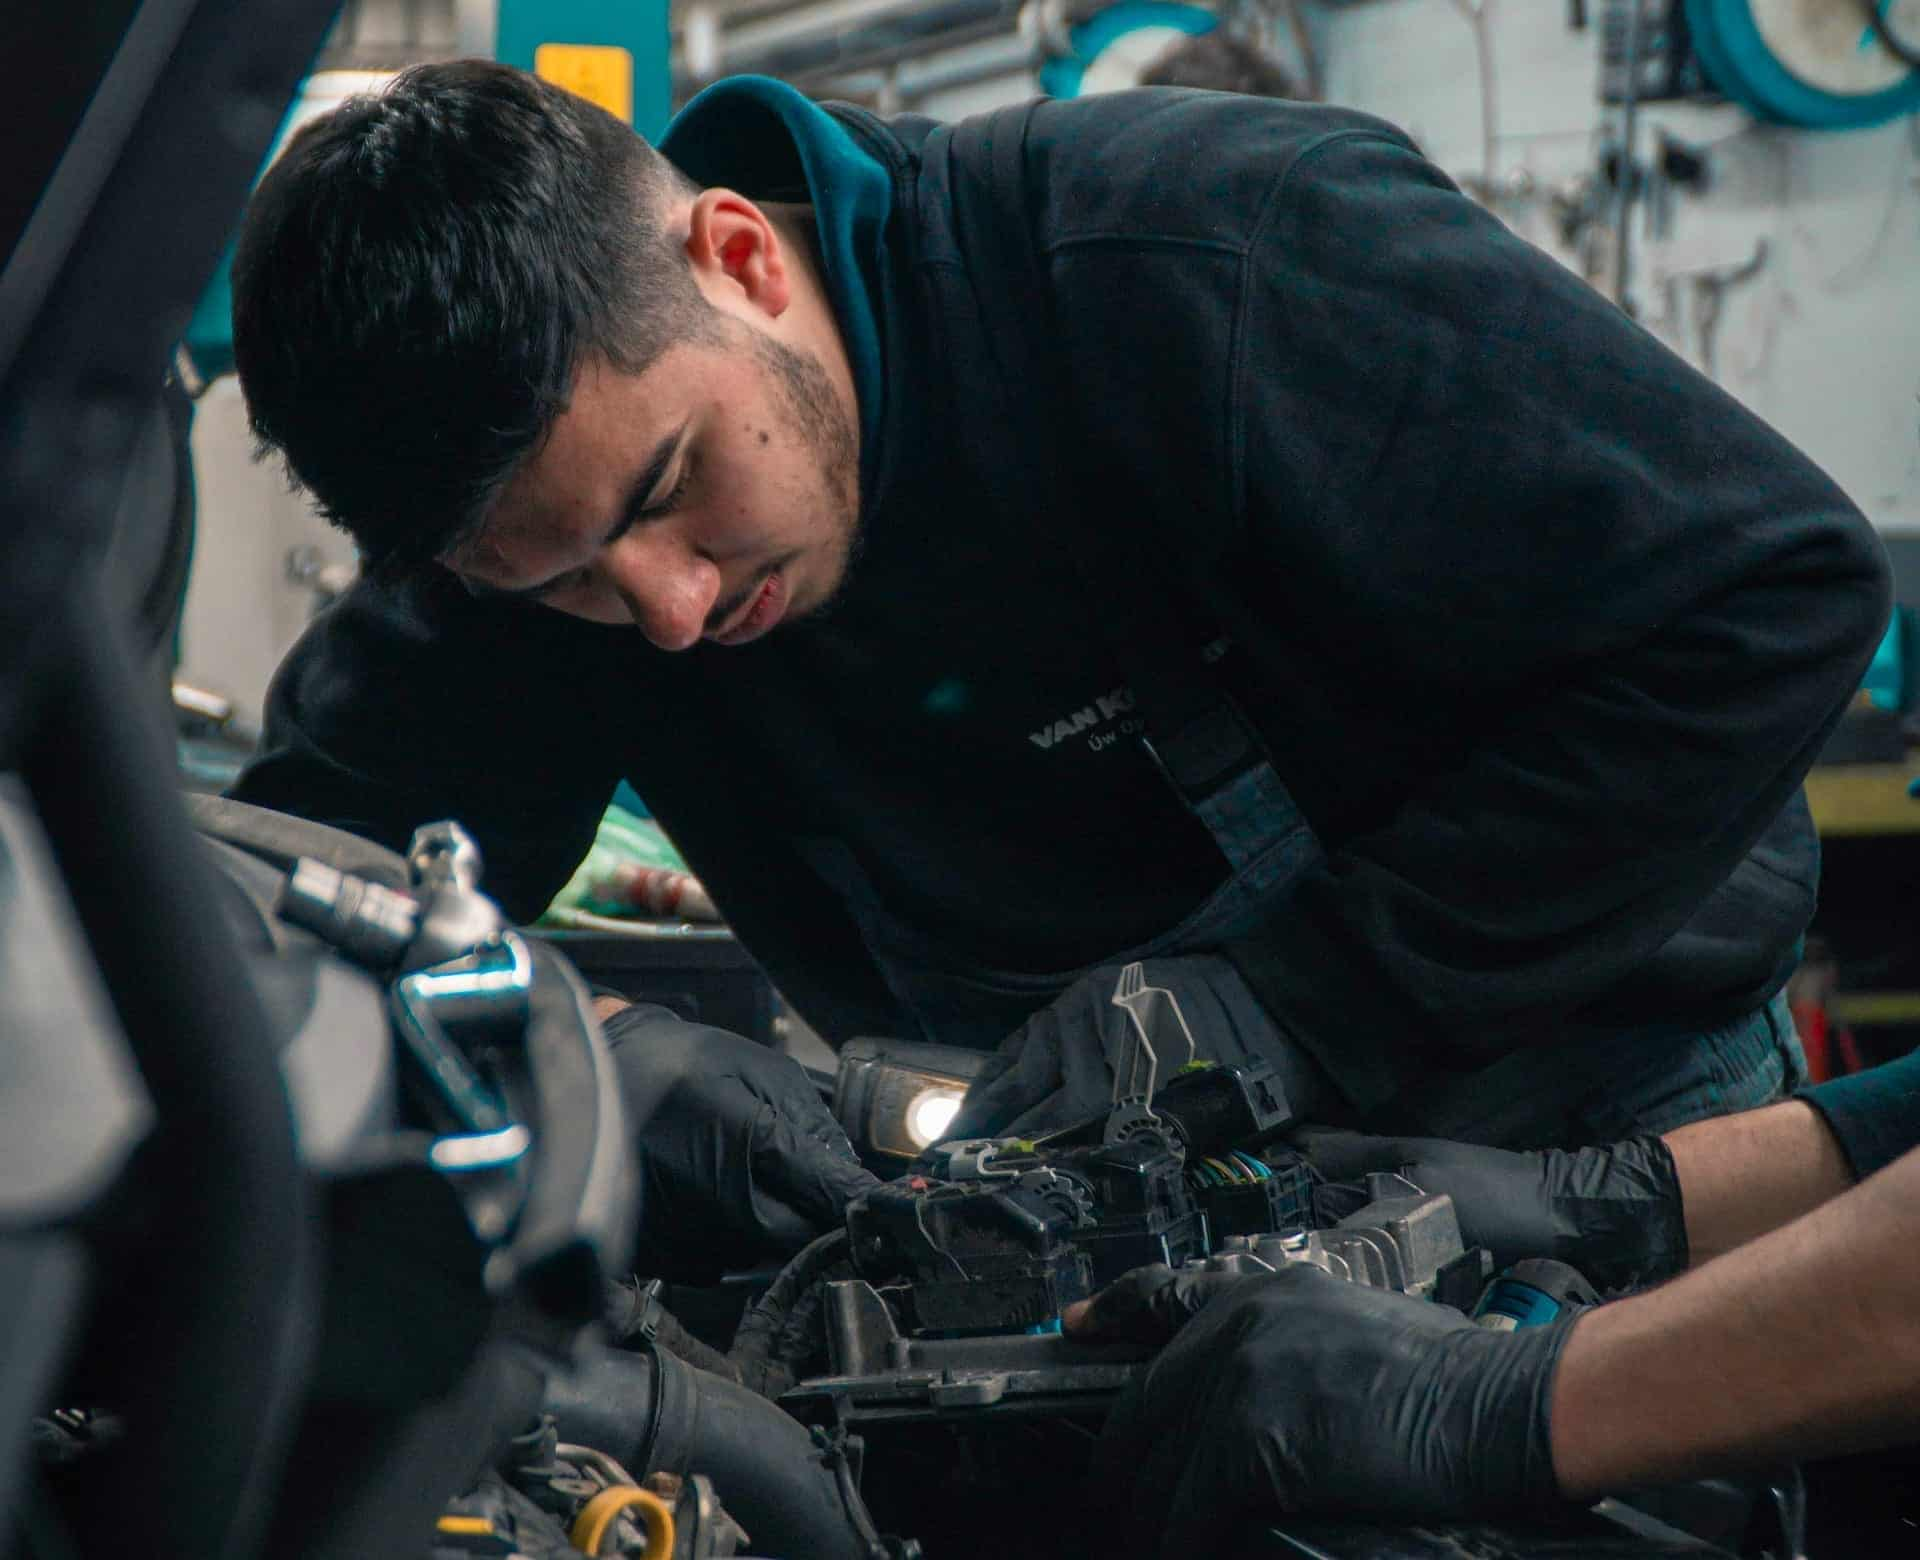 A mechanic under another's supervision